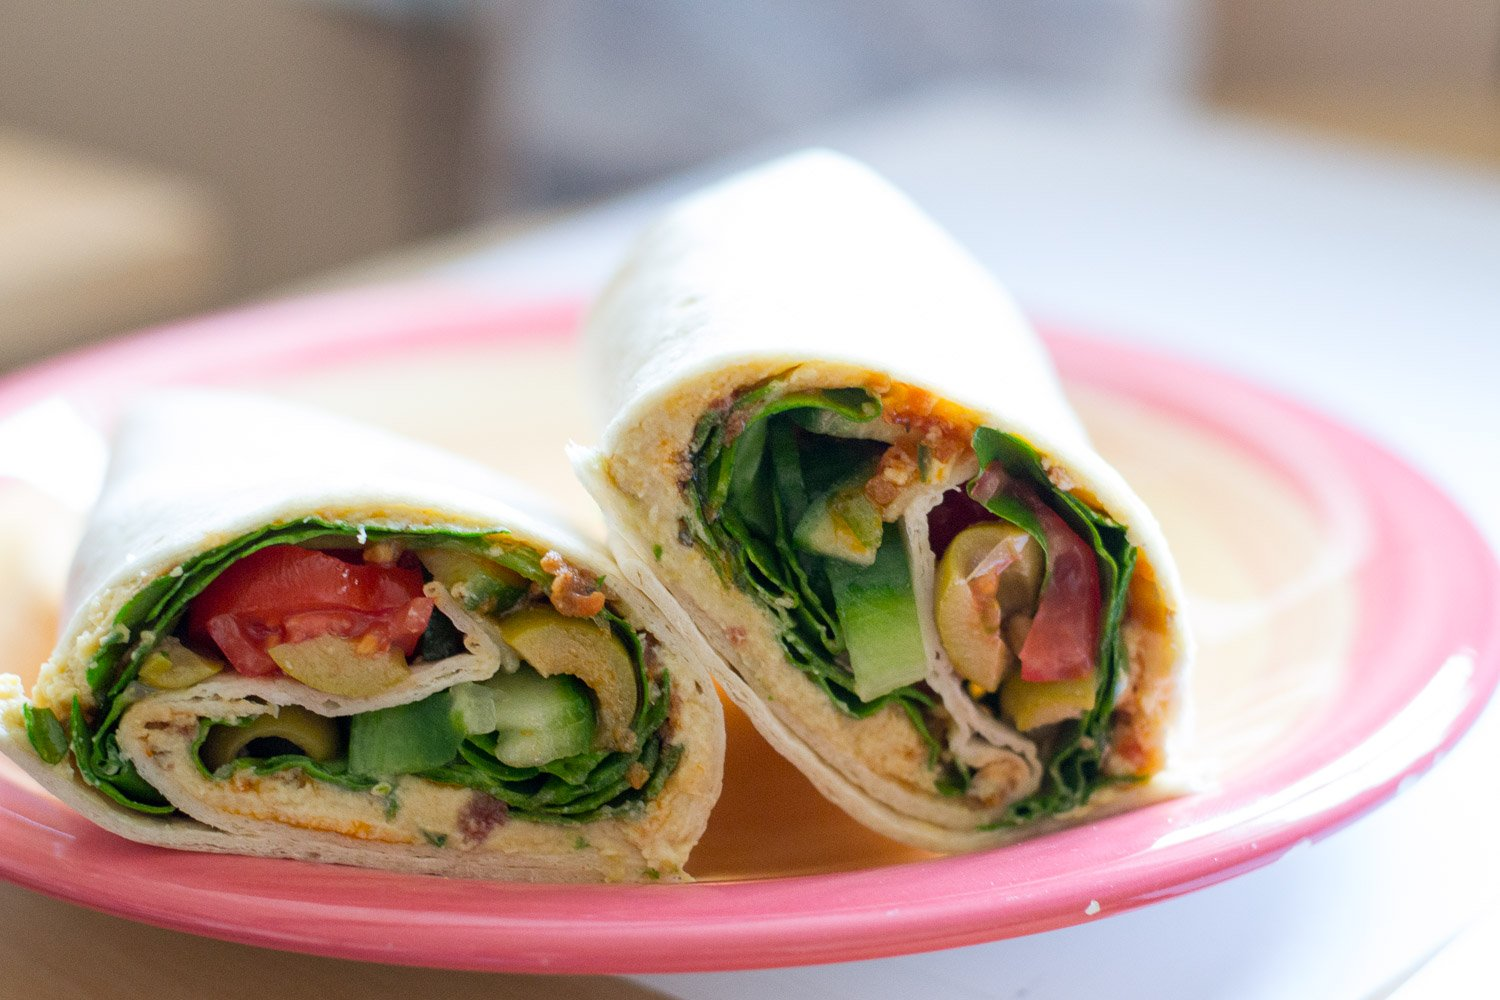 Vegan salad wrap with sundried tomato paste